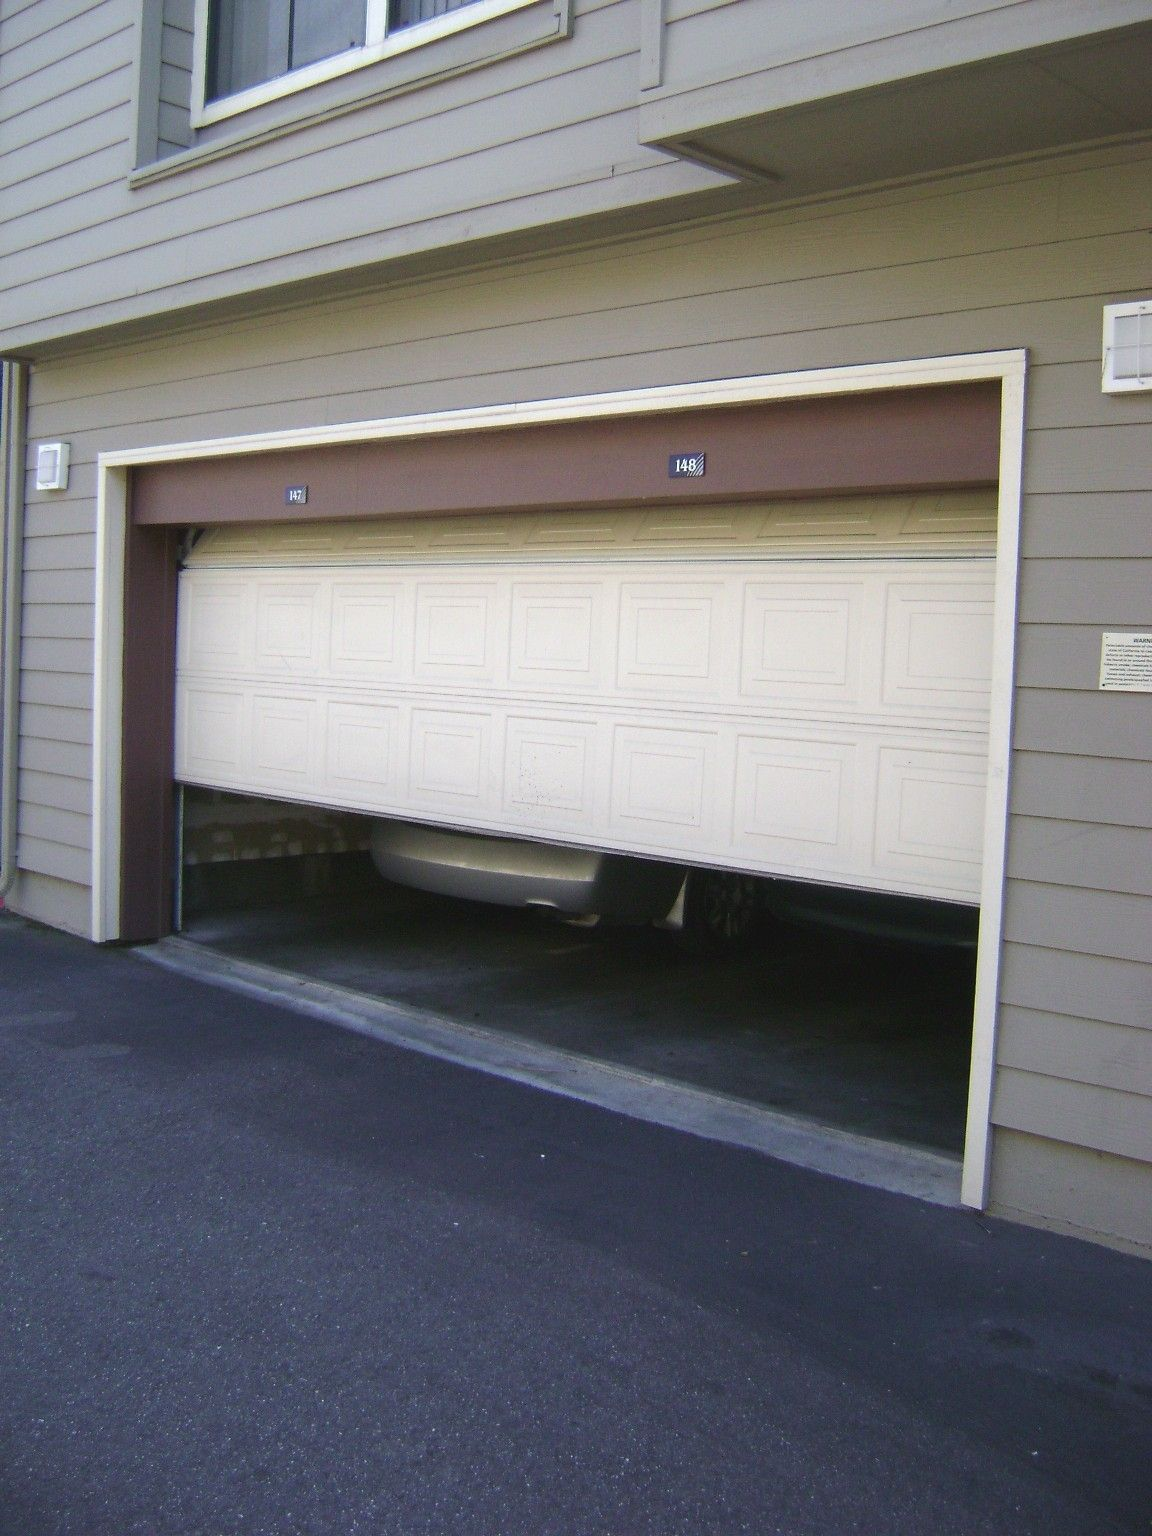 The Most Incredible Along With Stunning Richard Cornell Garage Doors With Regard To Home Garage Doors Garage Door Springs Electric Garage Doors